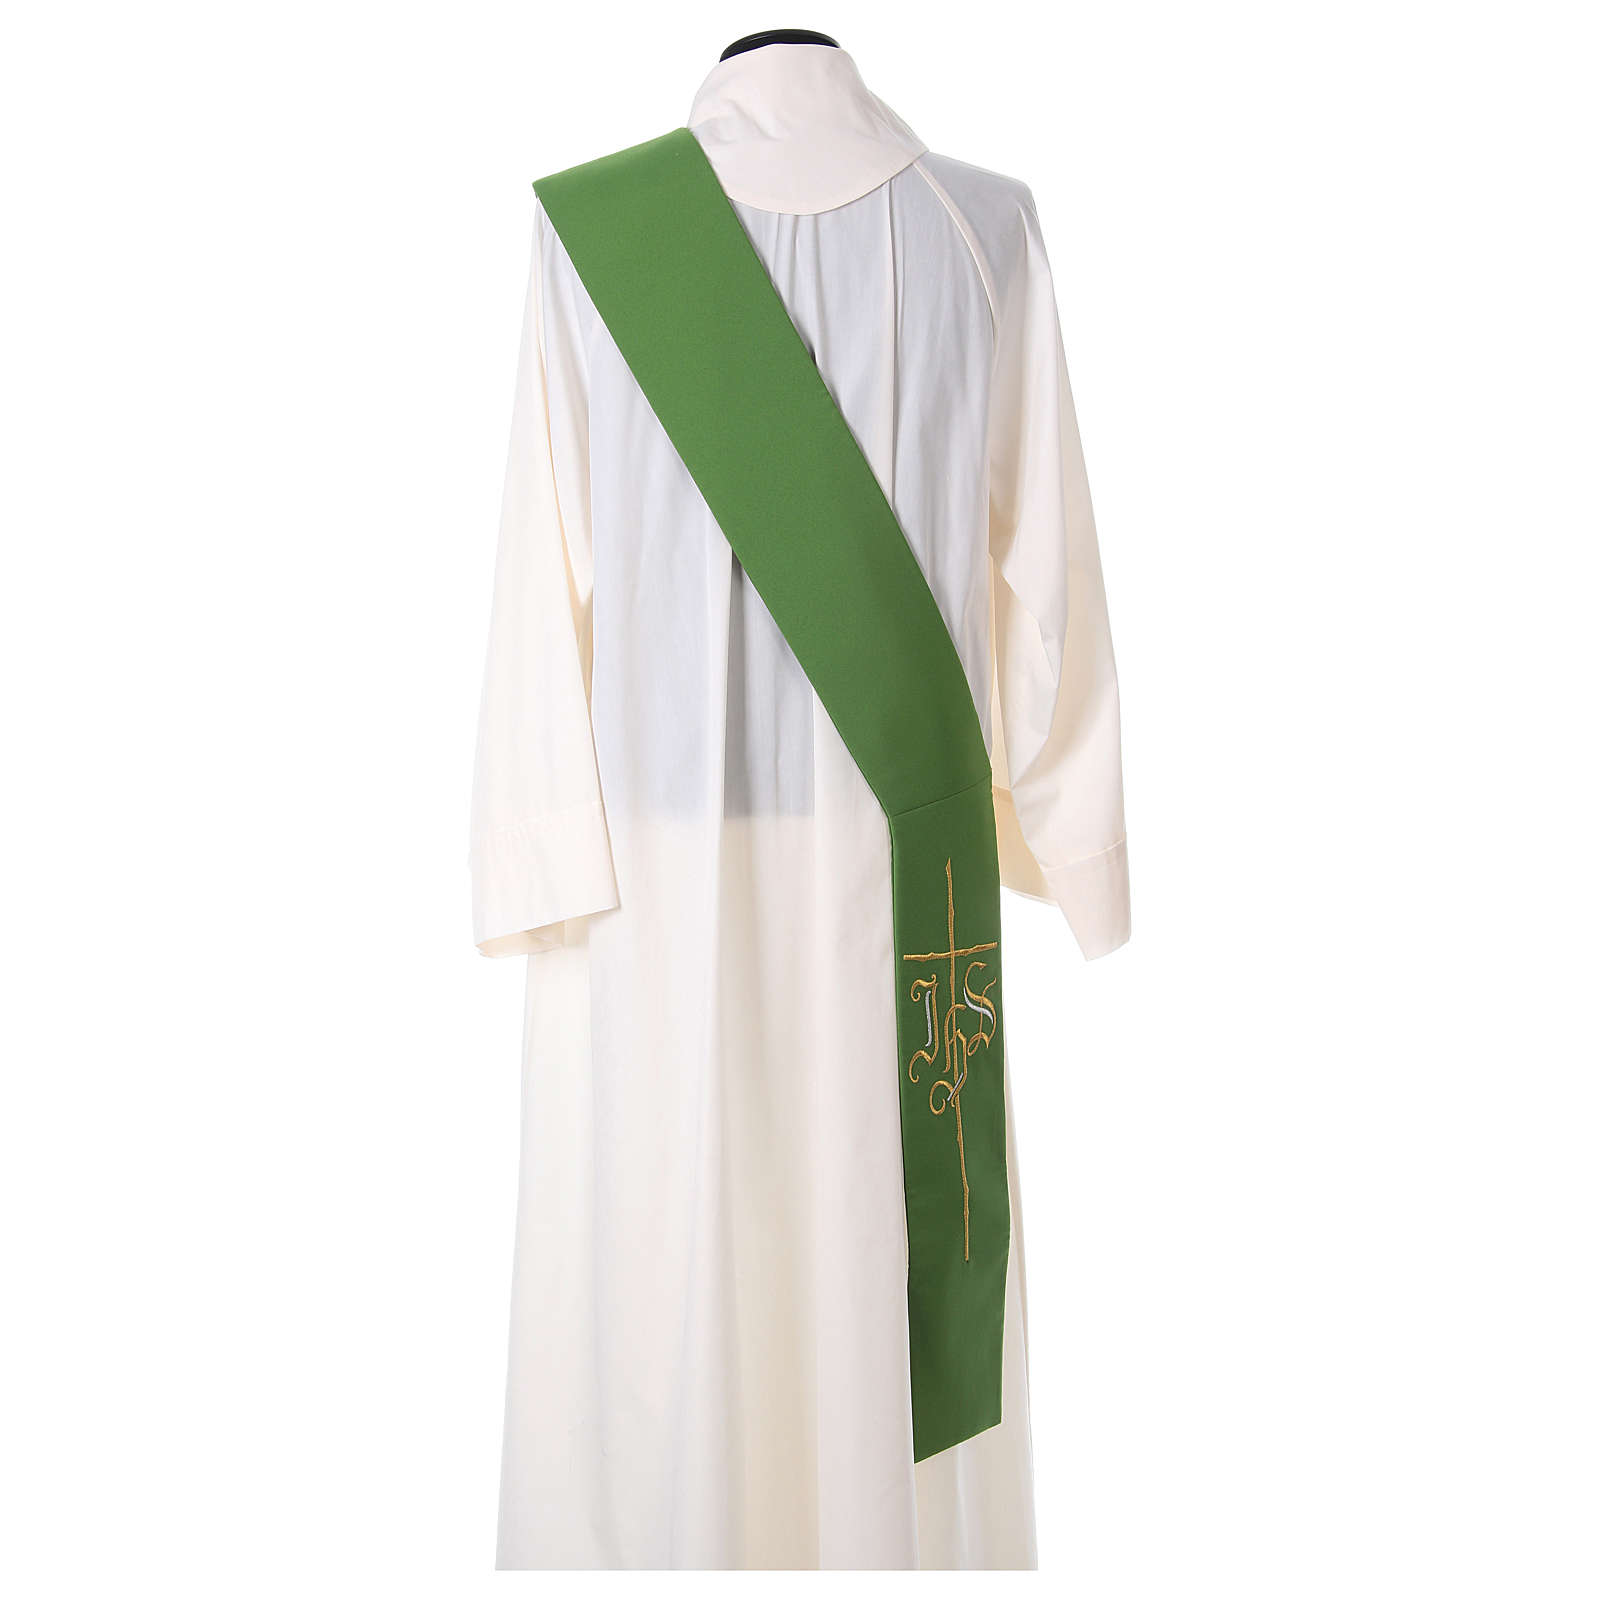 Deacon Stole in polyester with IHS and cross symbols 4